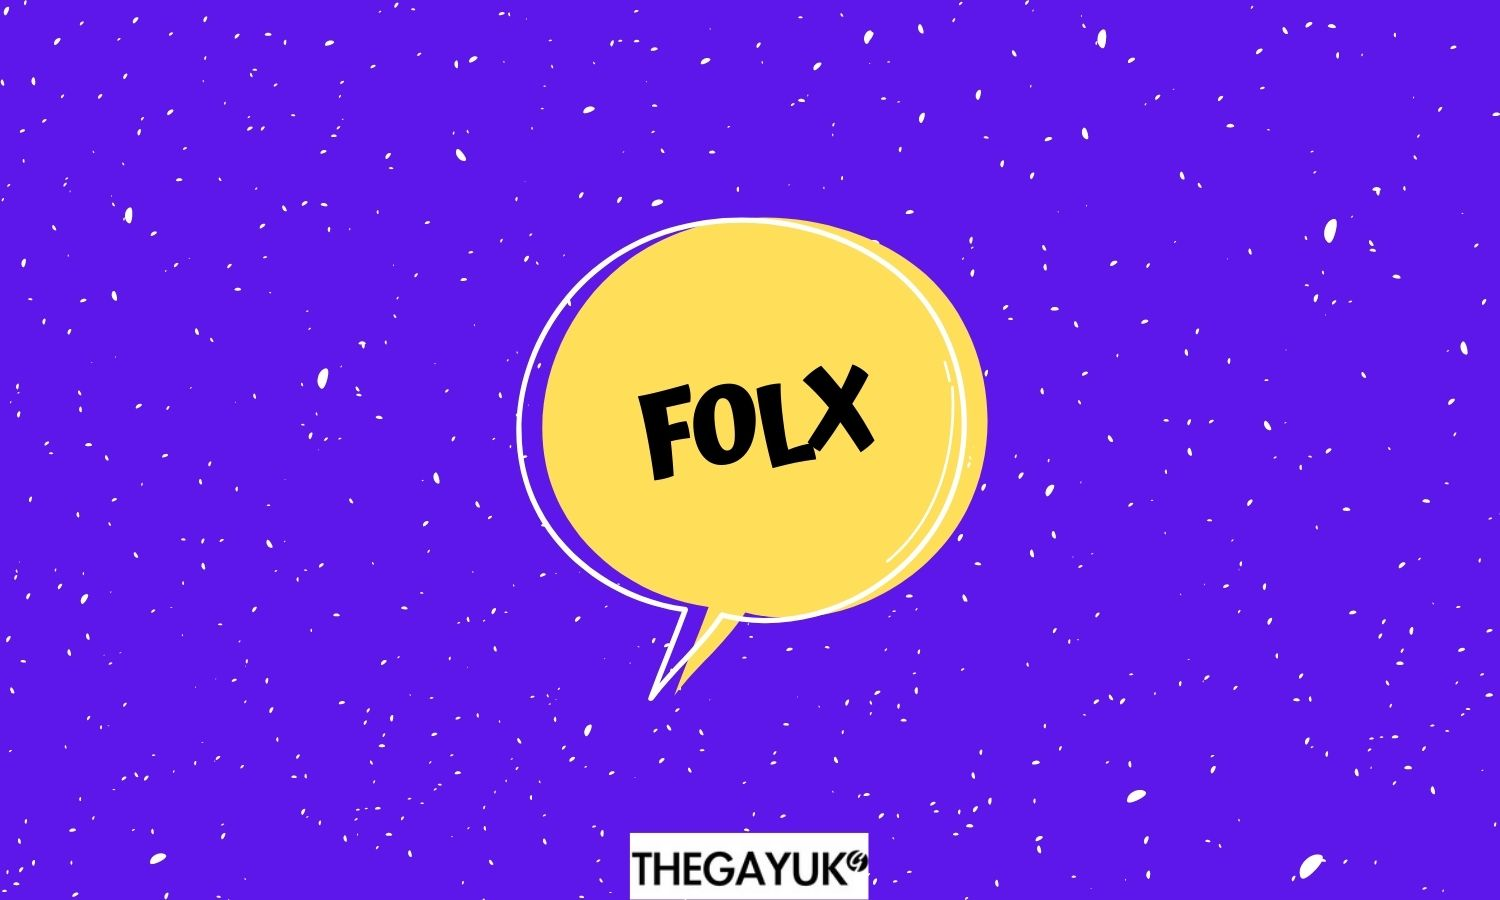 What does Folx mean